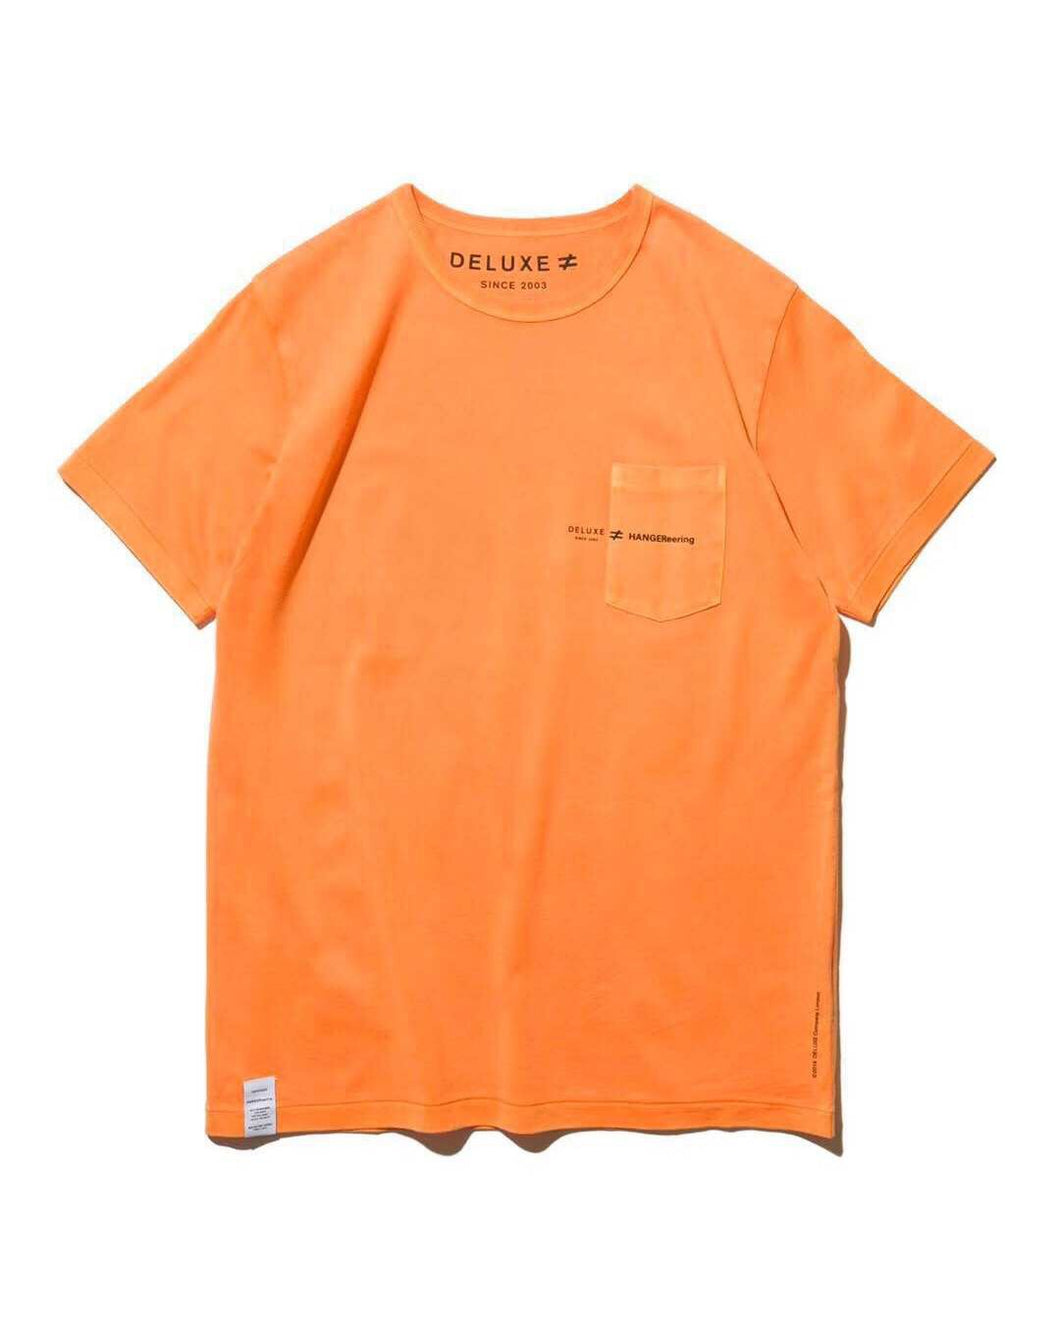 5.DELUXE JP x HANGEReering POCKET TEE SS -- ORANGE